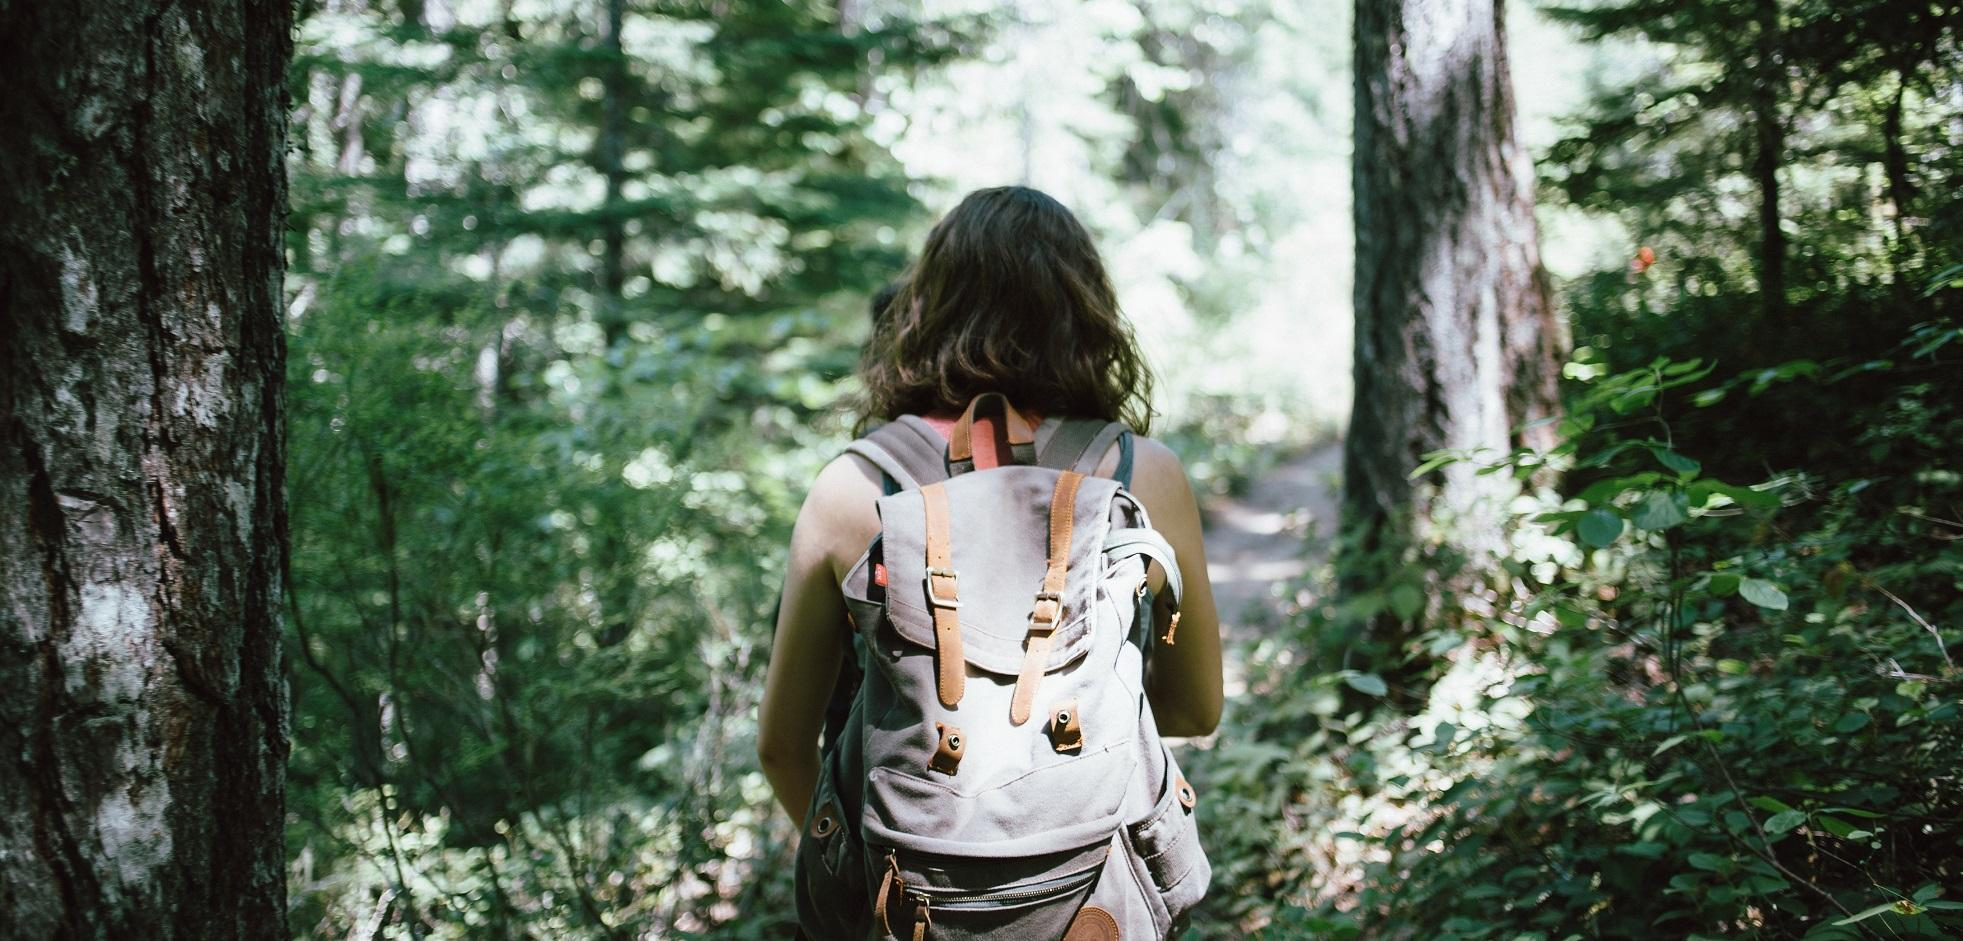 A female with a backpack hiking on a trail in Kains Woods.